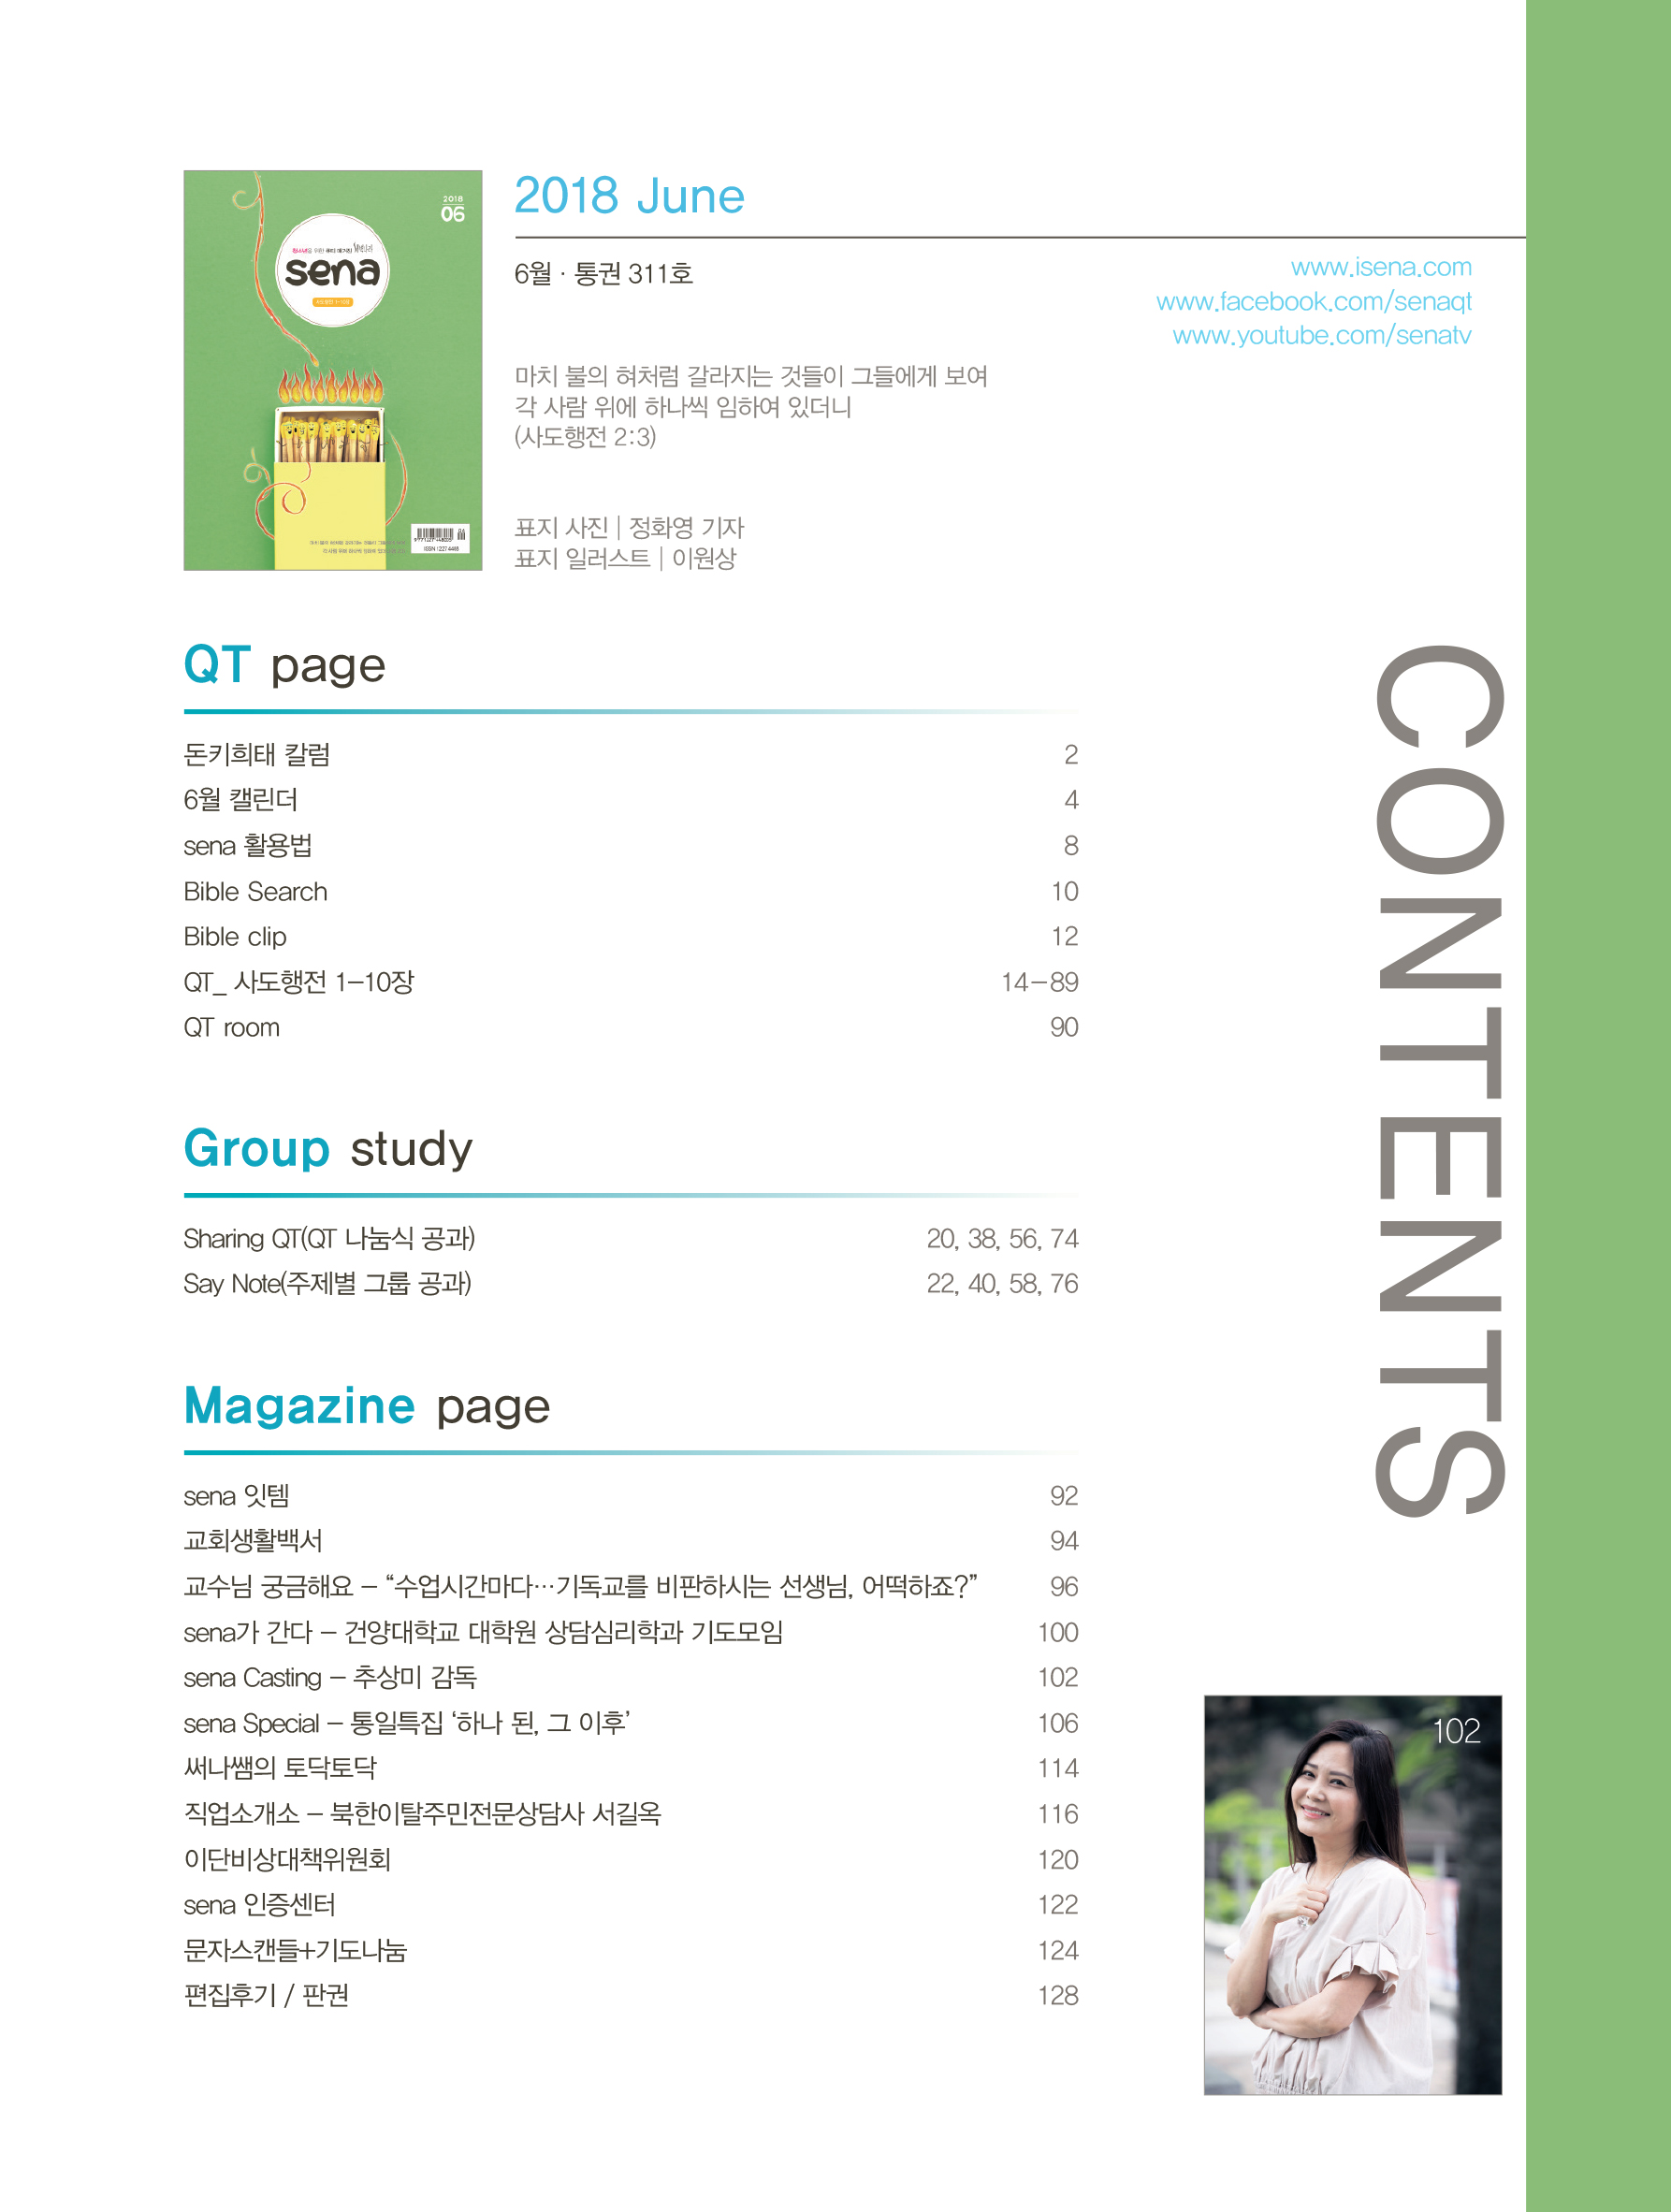 201806 contents